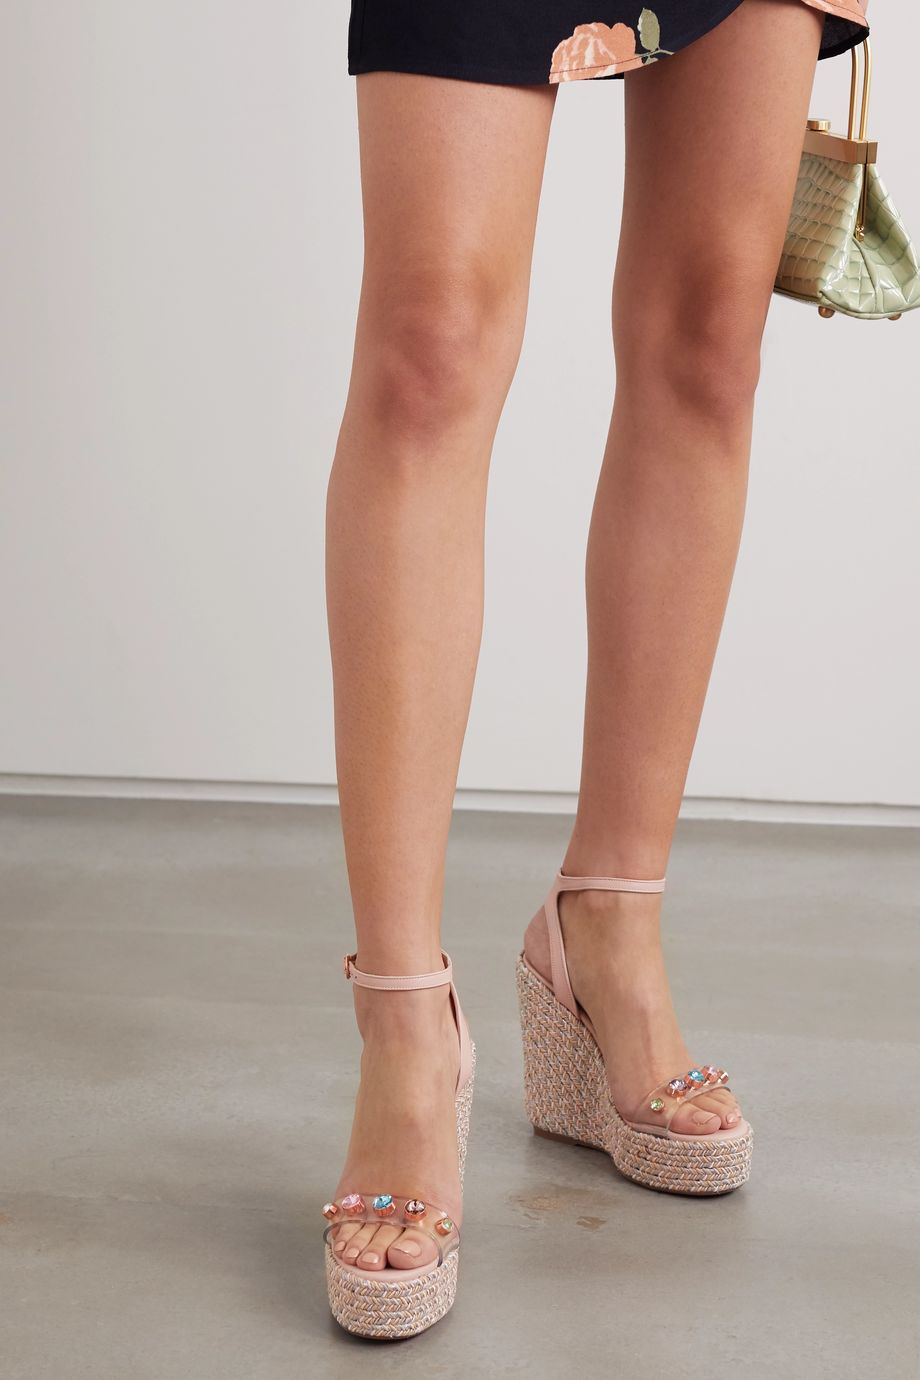 Sophia Webster Dina leather and crystal-embellished PVC espadrille wedge sandals